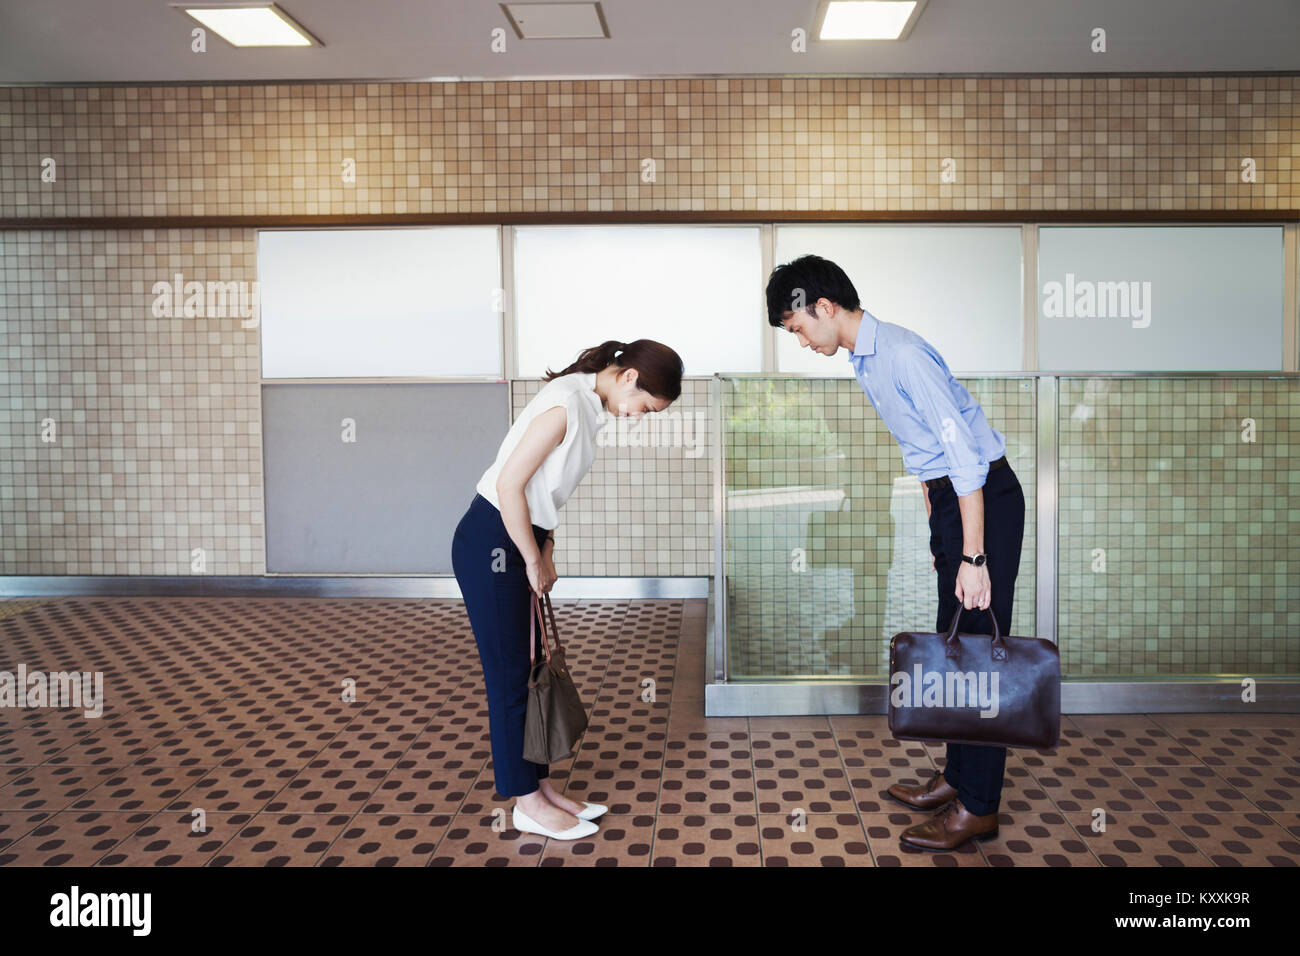 Two people greeting, a man and young woman bowing from the waist when they meet in a subway. - Stock Image